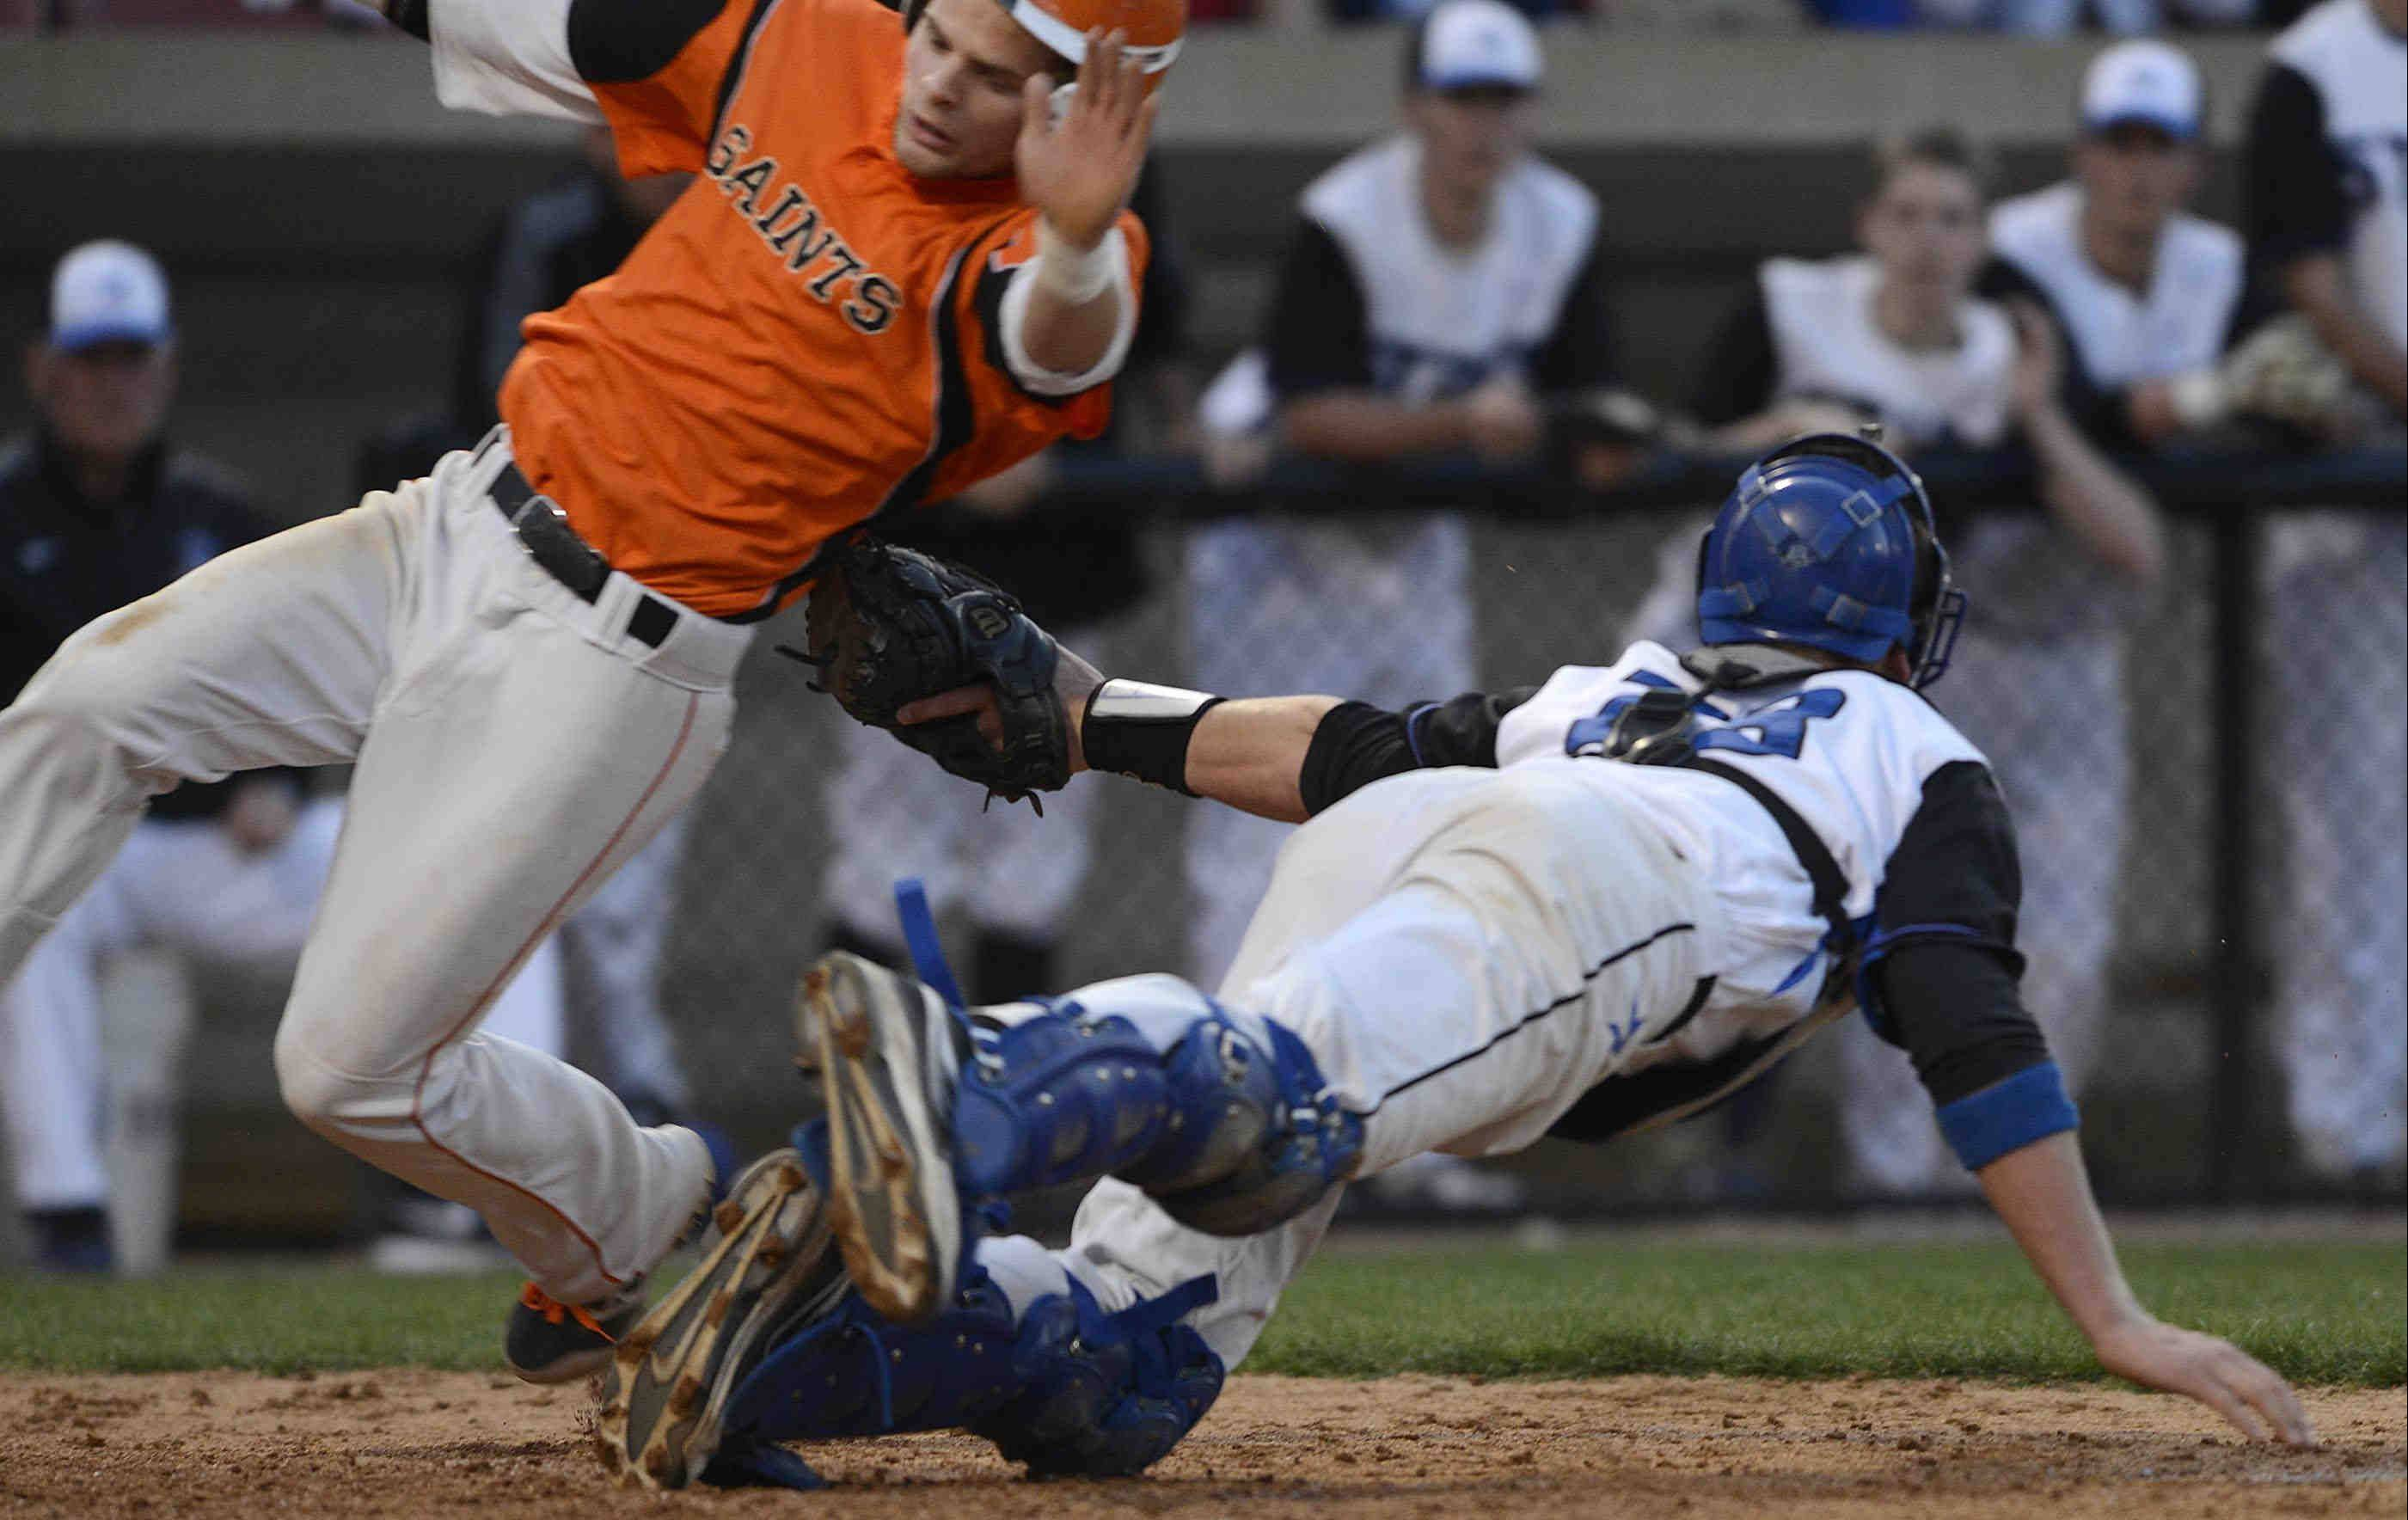 St. Charles East's Nicholas Erickson avoids the tag of St. Charles North catcher Ryan Thomas Monday at Fifth Third Bank Park in Geneva. Thomas actually did not have the ball in his glove and the Saints' Brian Sobieski also scored on the play.